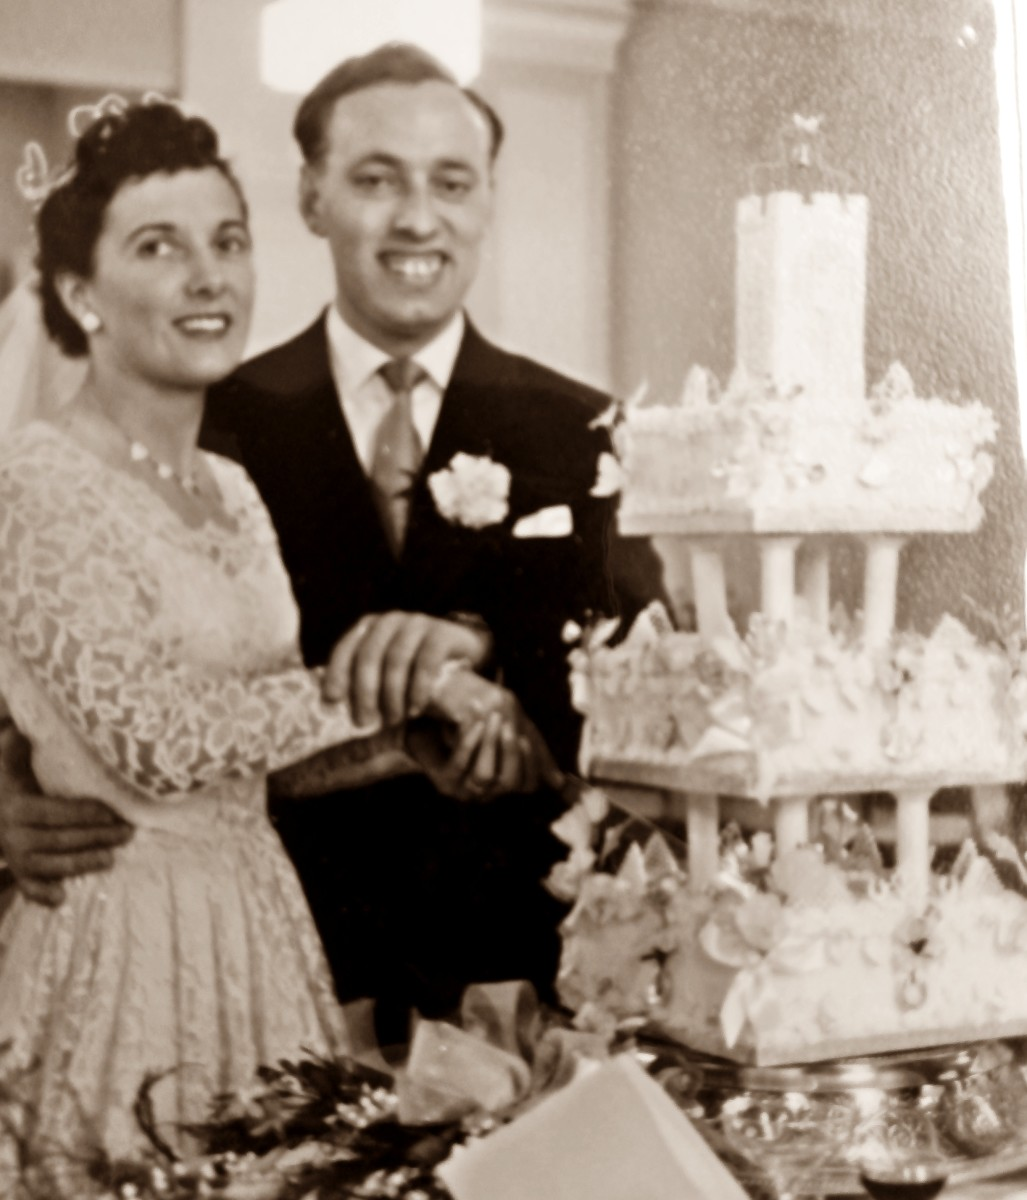 Cutting the cake at their wedding, 1957.